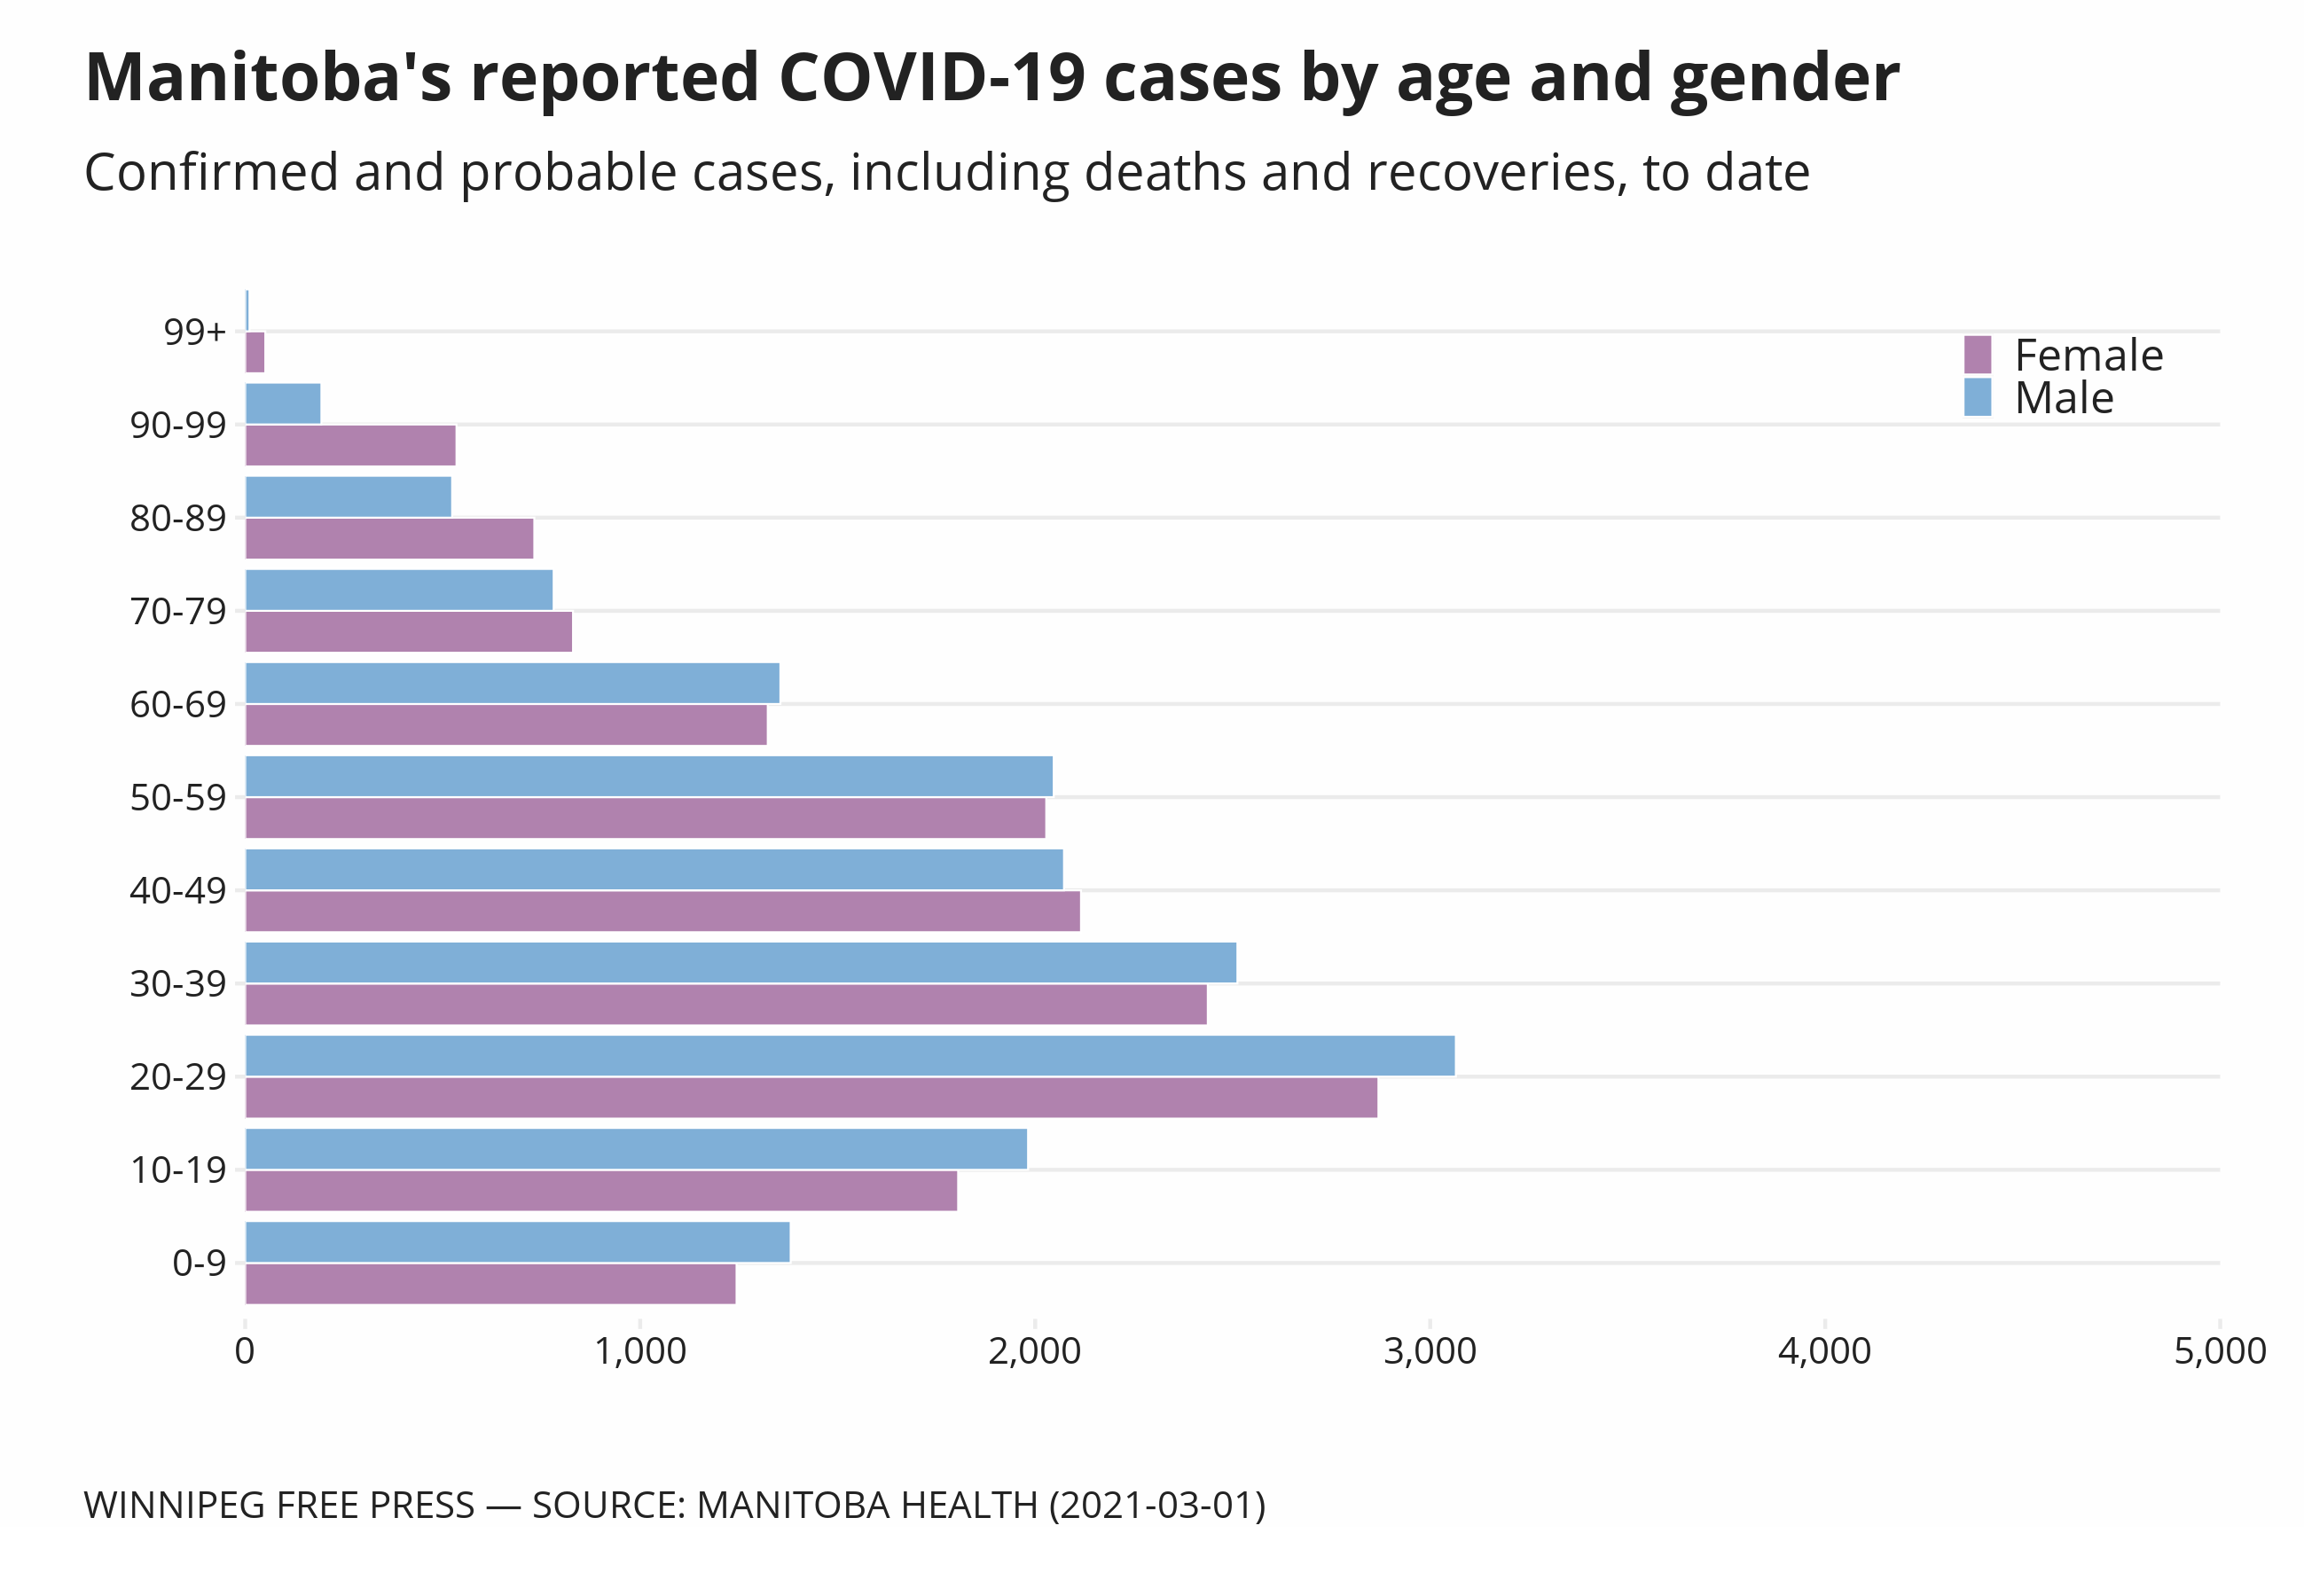 Chart showing Manitoba's reported COVID-19 cases by age and gender